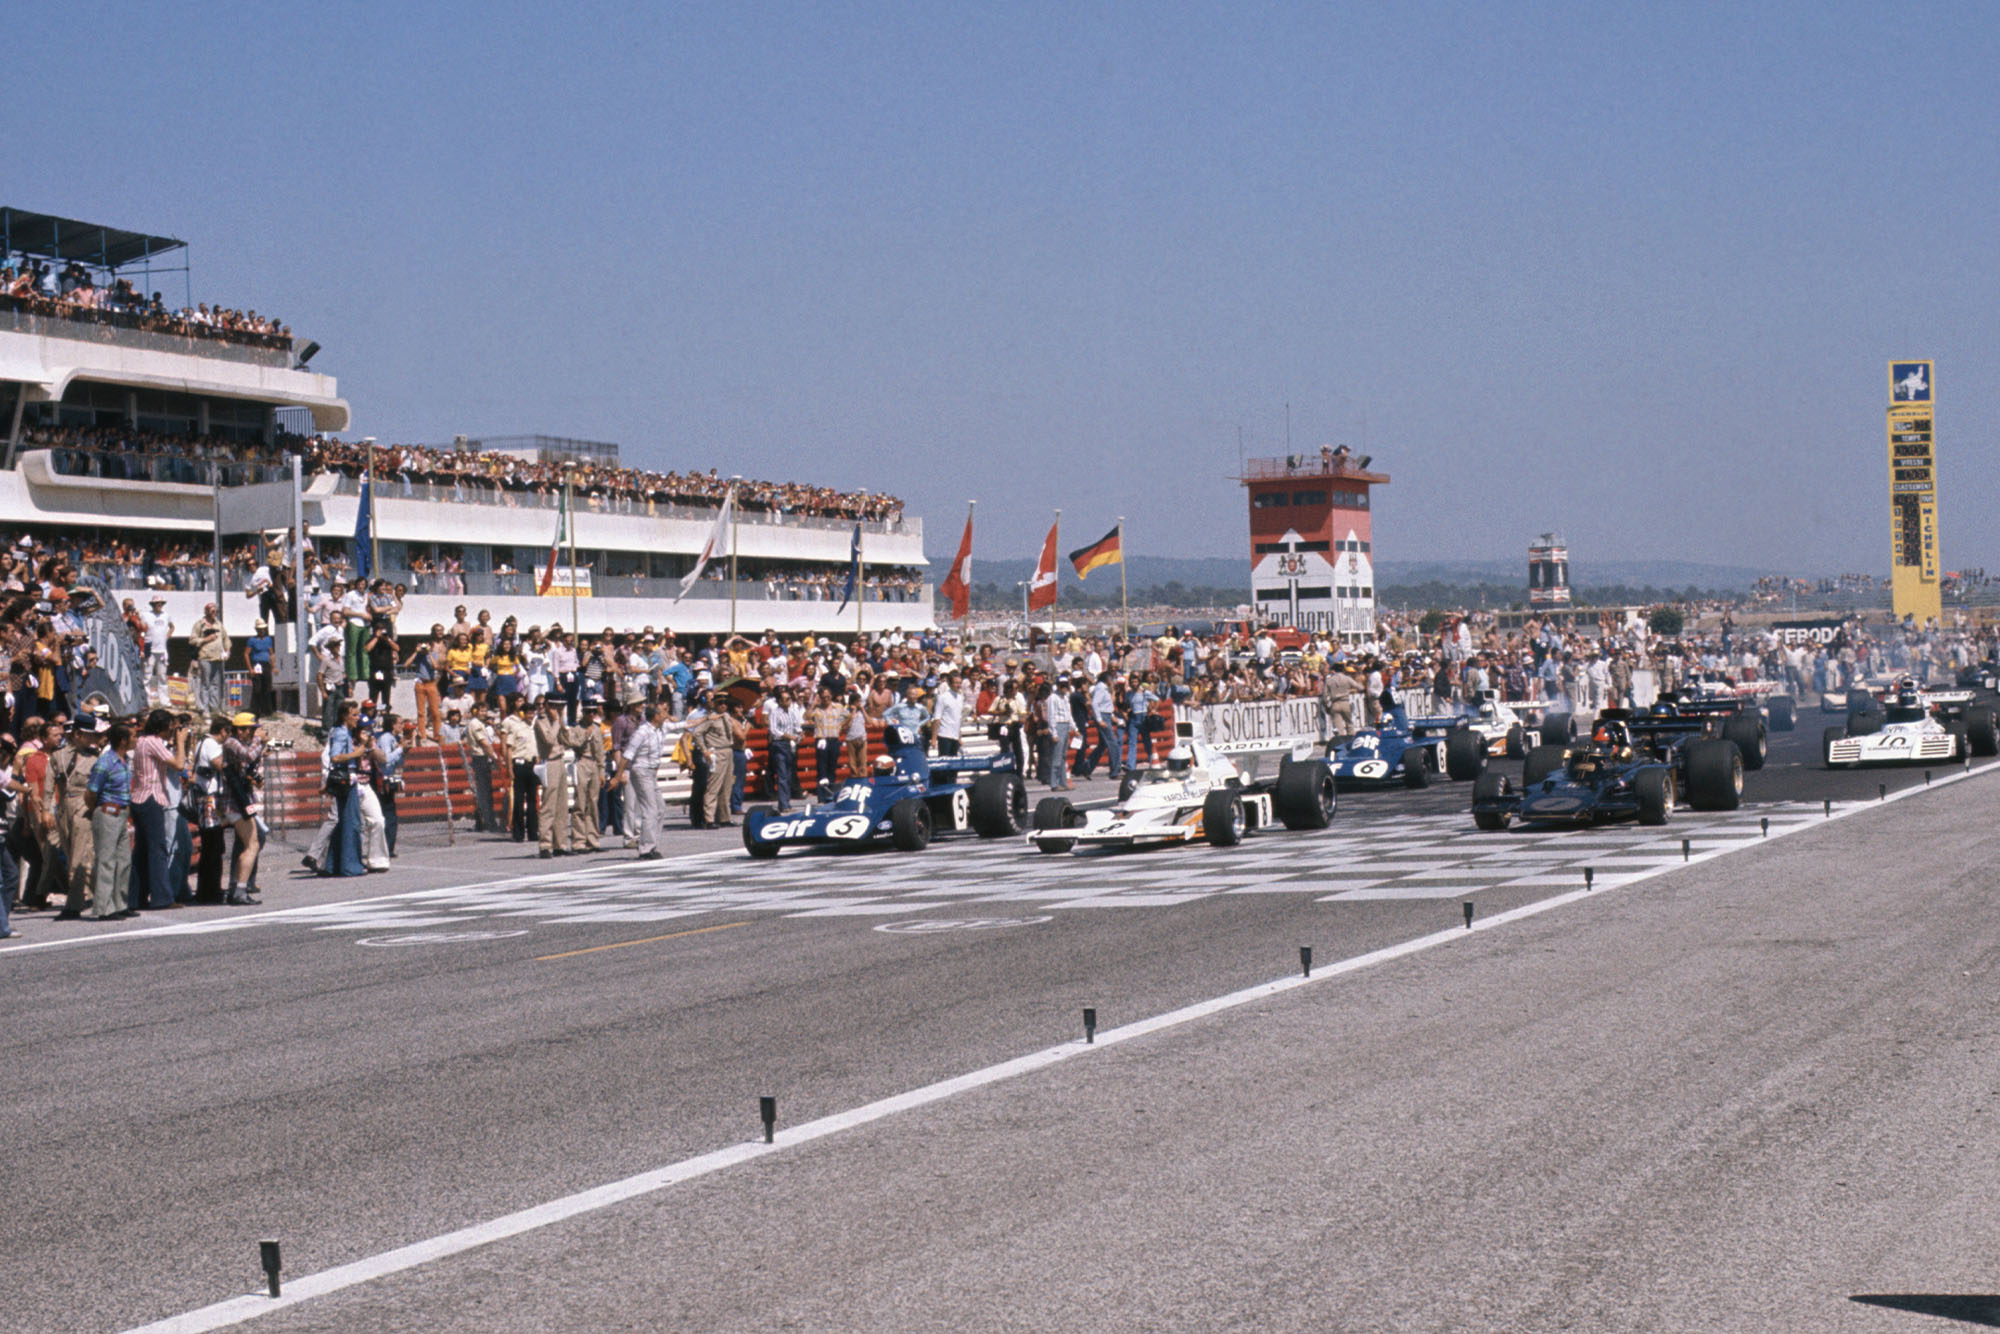 The 1973 French Grand Prix begins as the cars line up on the grid.